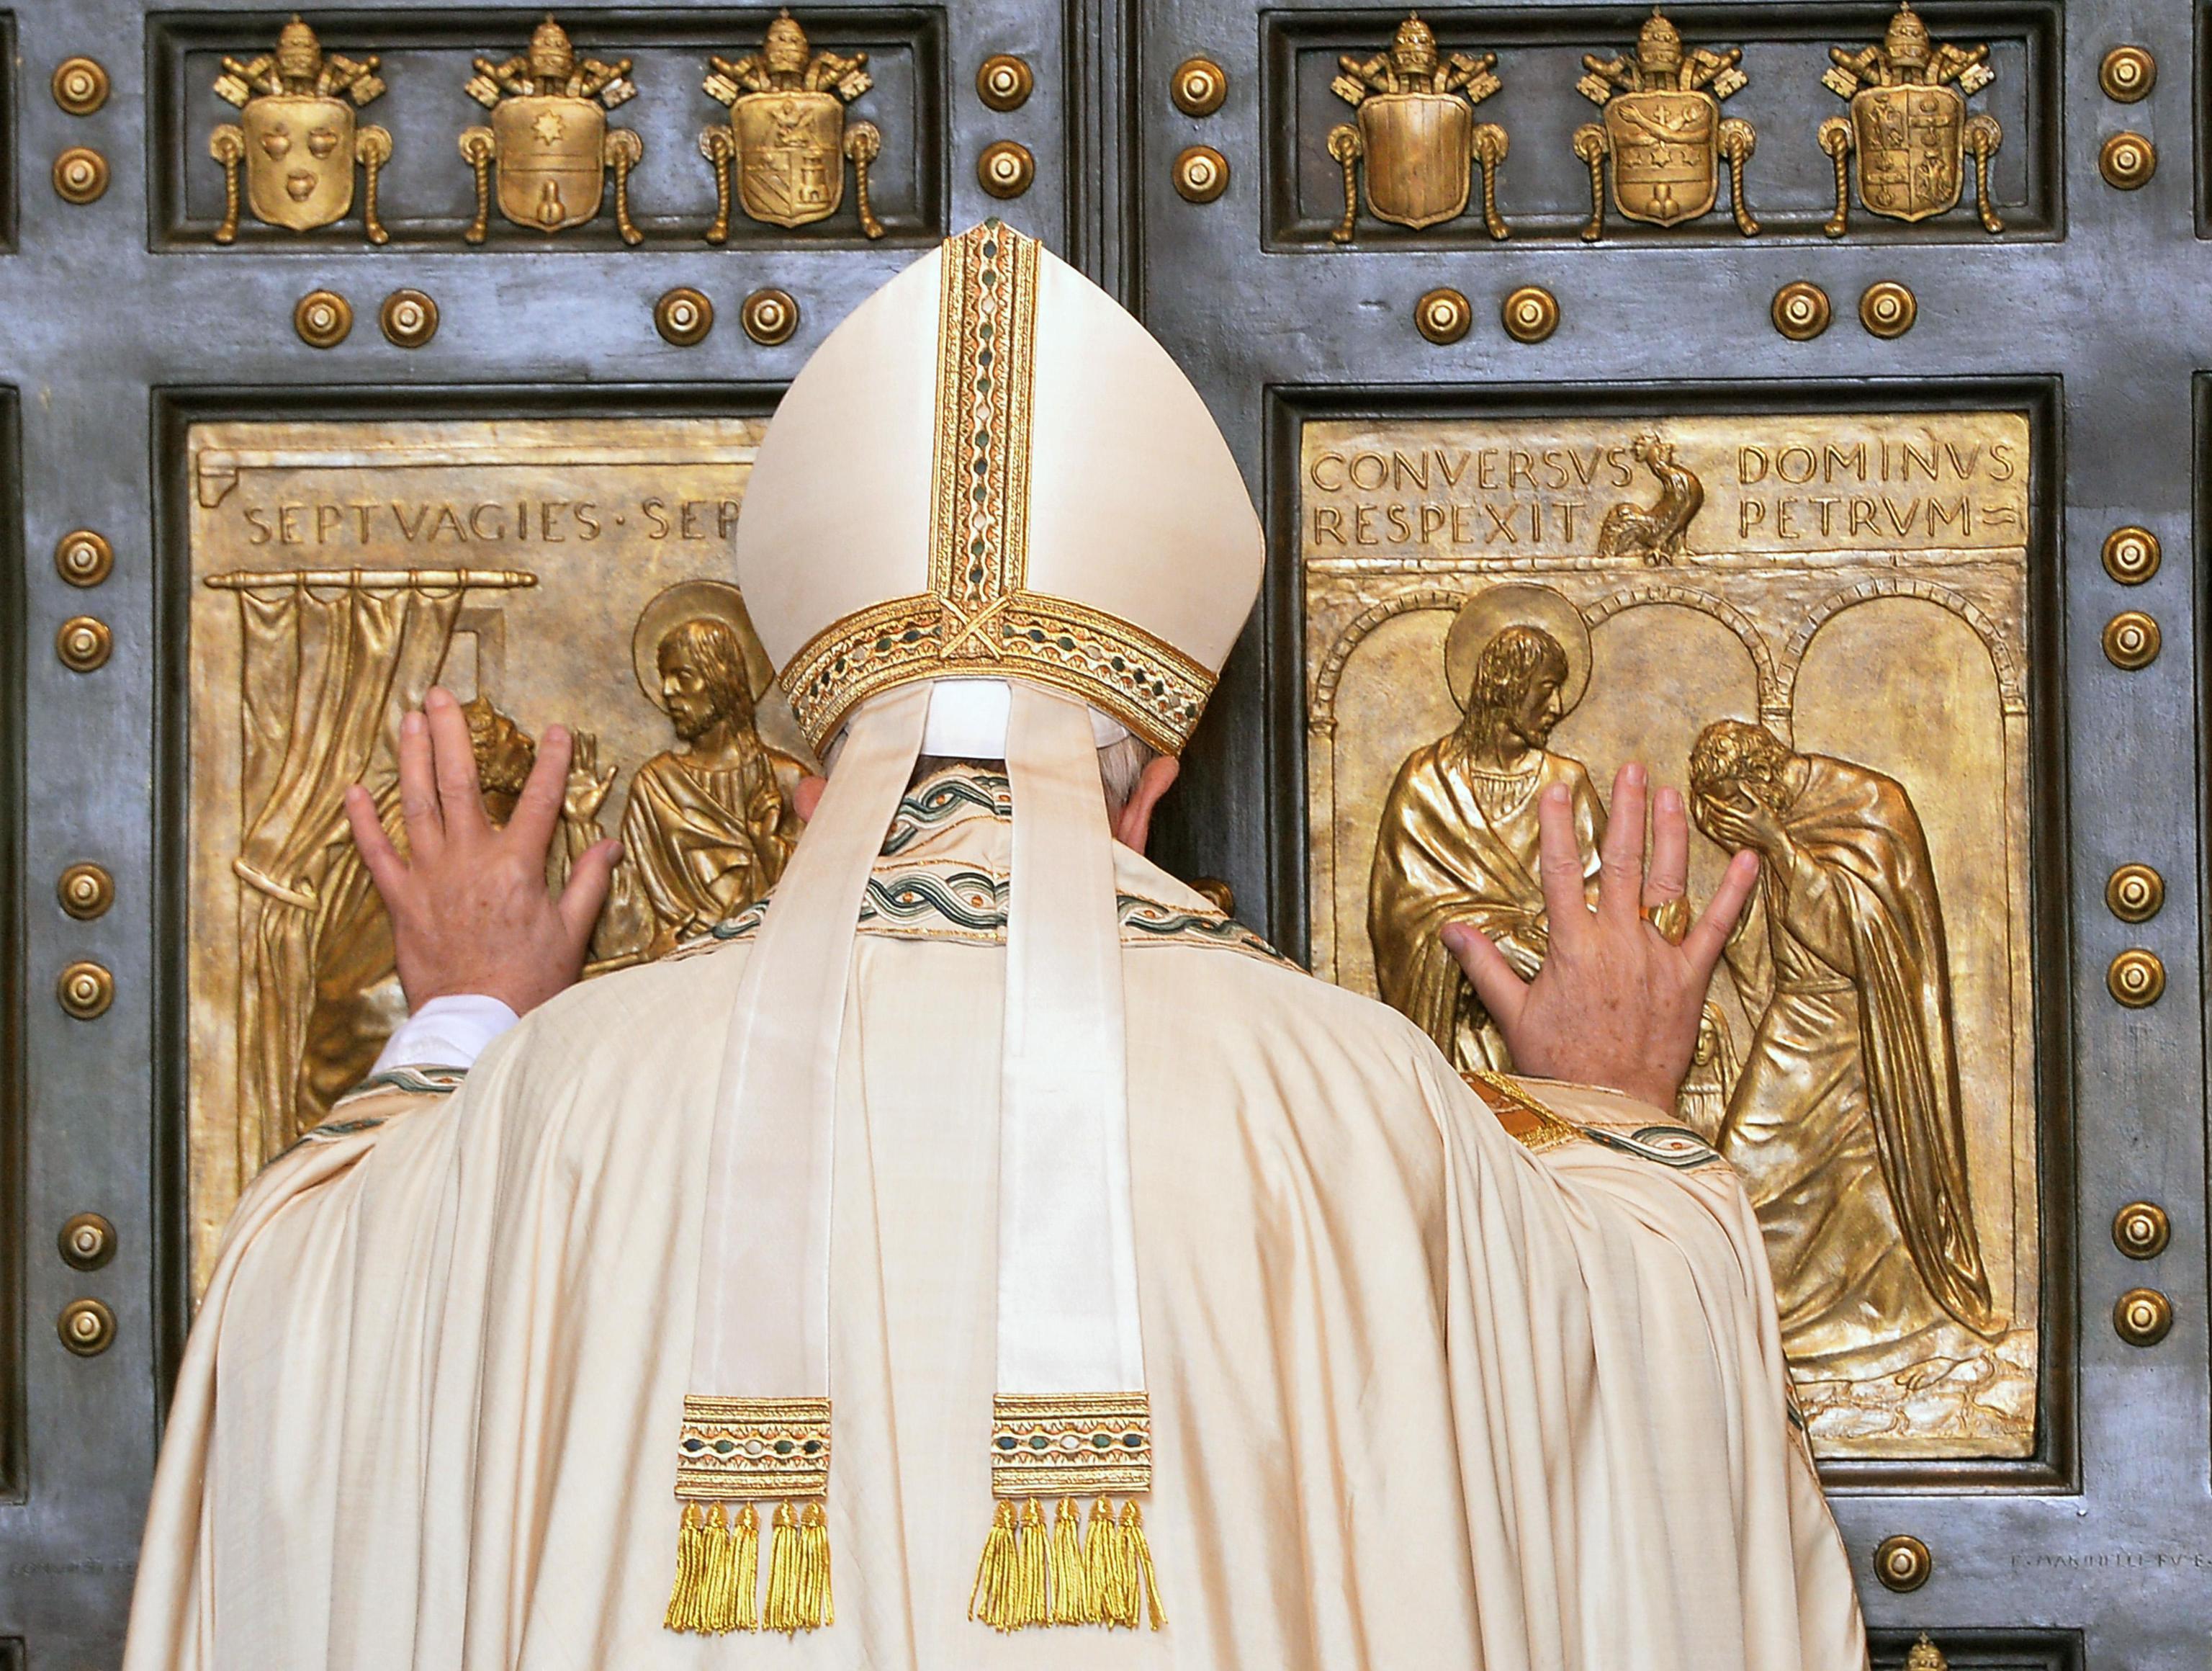 Pope Francis opens the Holy Door of St. Peter's Basilica to inaugurate the Jubilee Year of Mercy at the Vatican Dec. 8. (CNS photo/Maurizio Brambatti, EPA) See POPE-MERCY-DOOR Dec. 8, 2015.